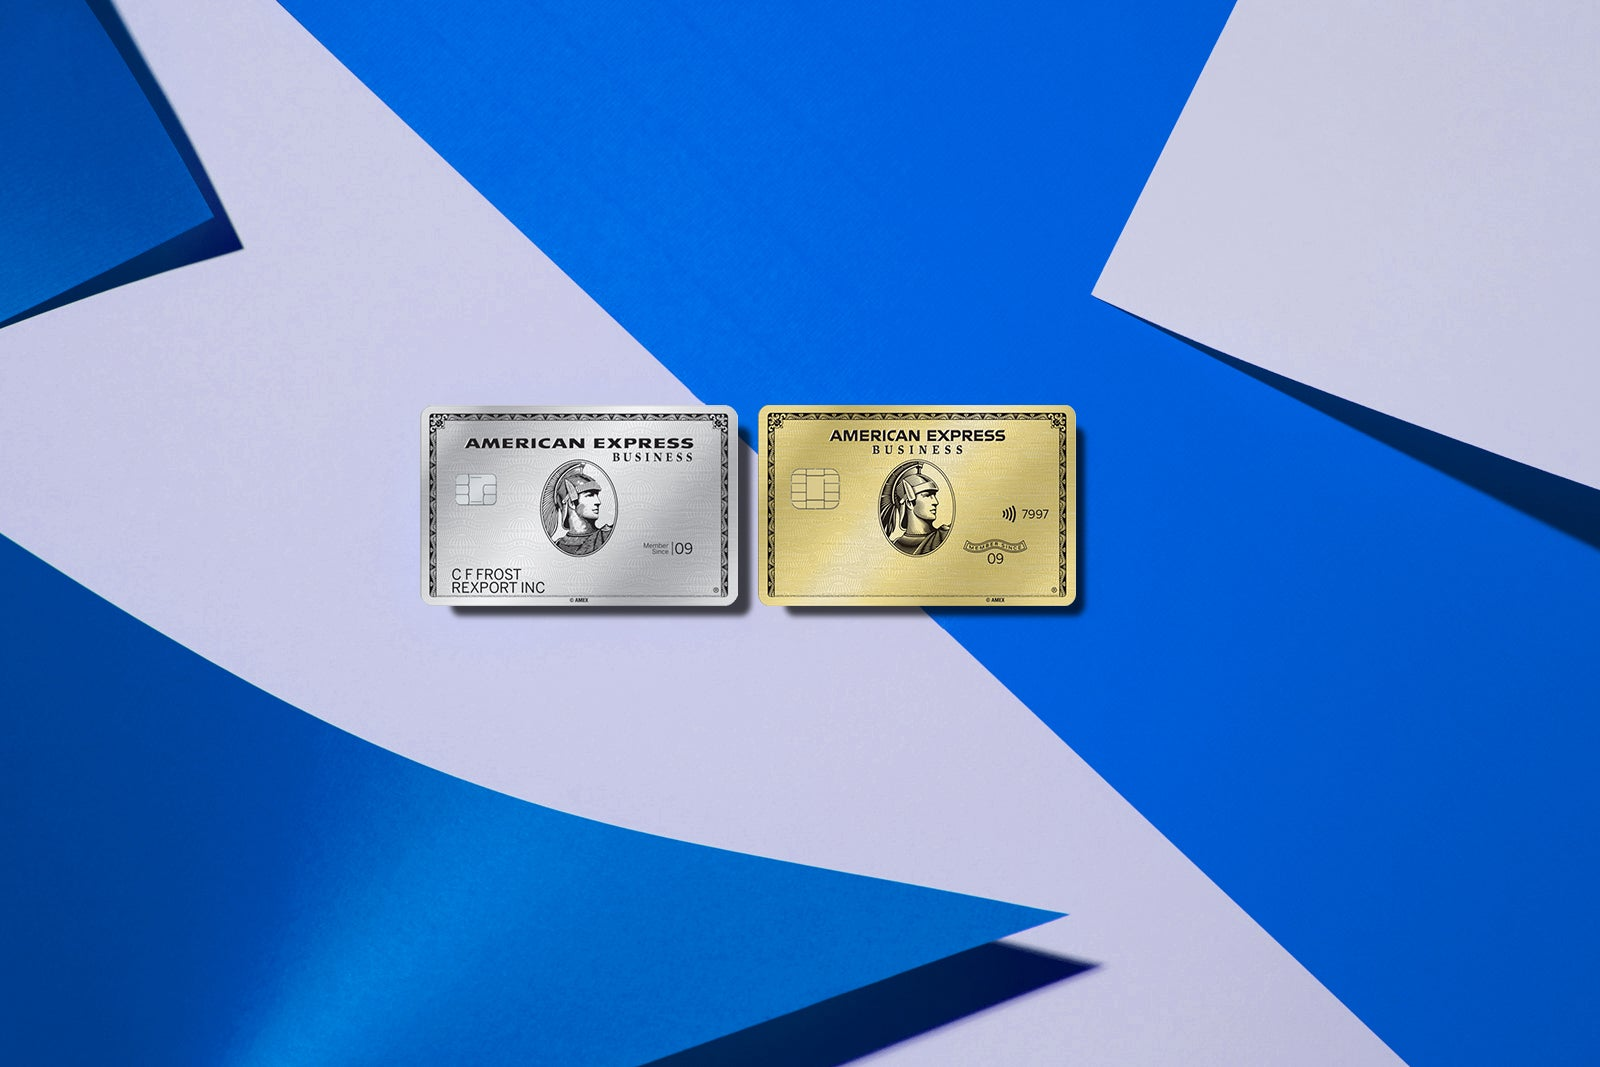 American Express Gold and Platinum cards